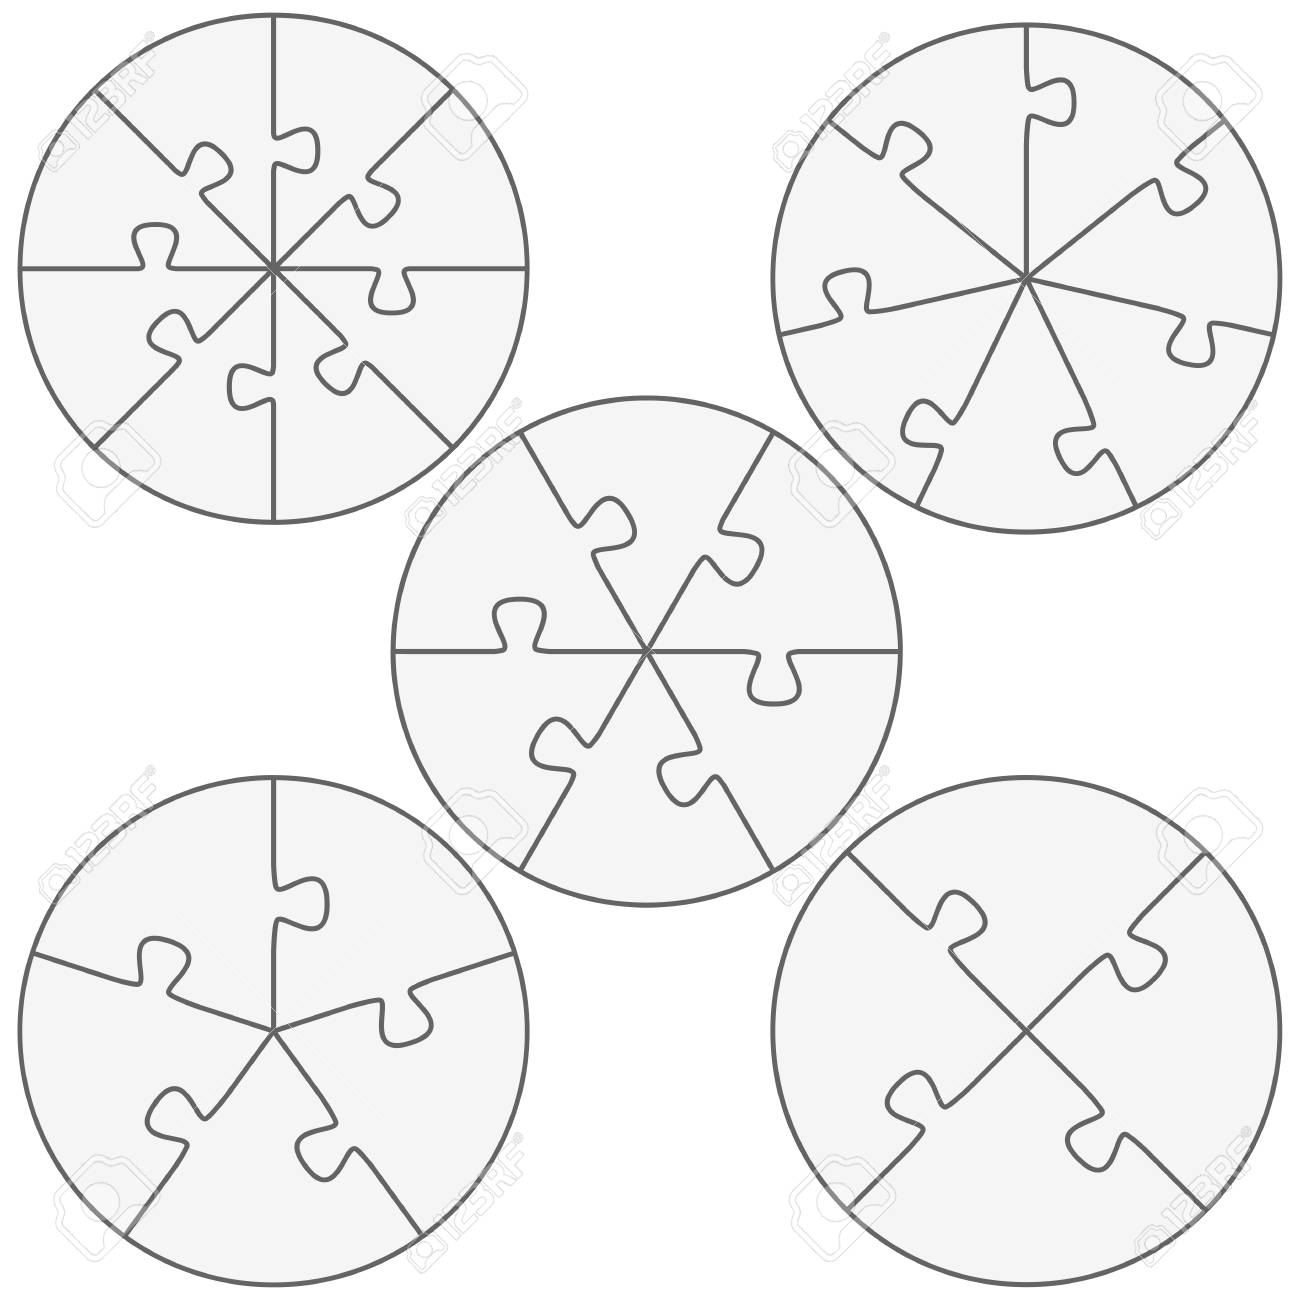 Five Round Puzzle Templates With Different Number Of Pieces Royalty ...